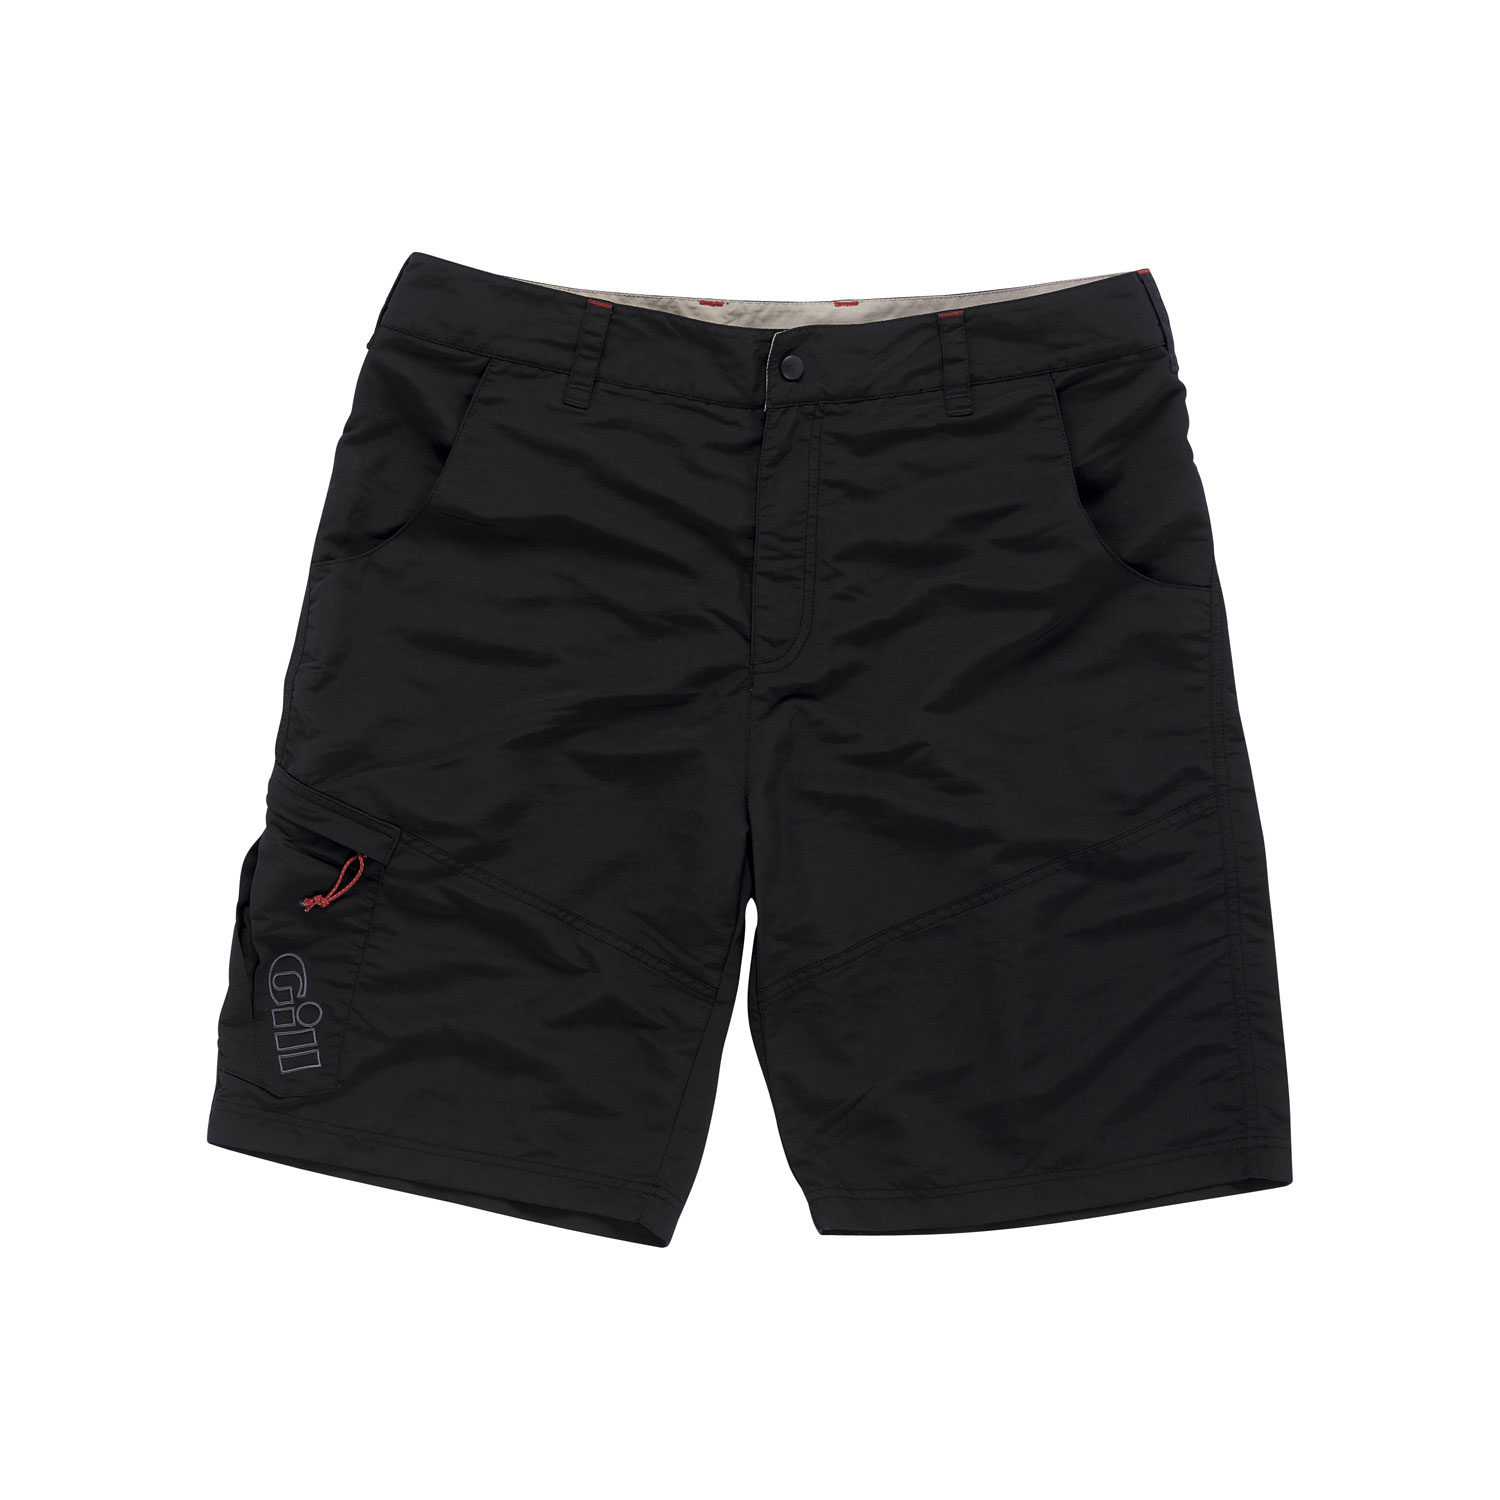 Mens Shorts products View all mens clothing Whether you're heading off on holiday, exercising, or need casual wear, our range of men's shorts are just the thing for you.